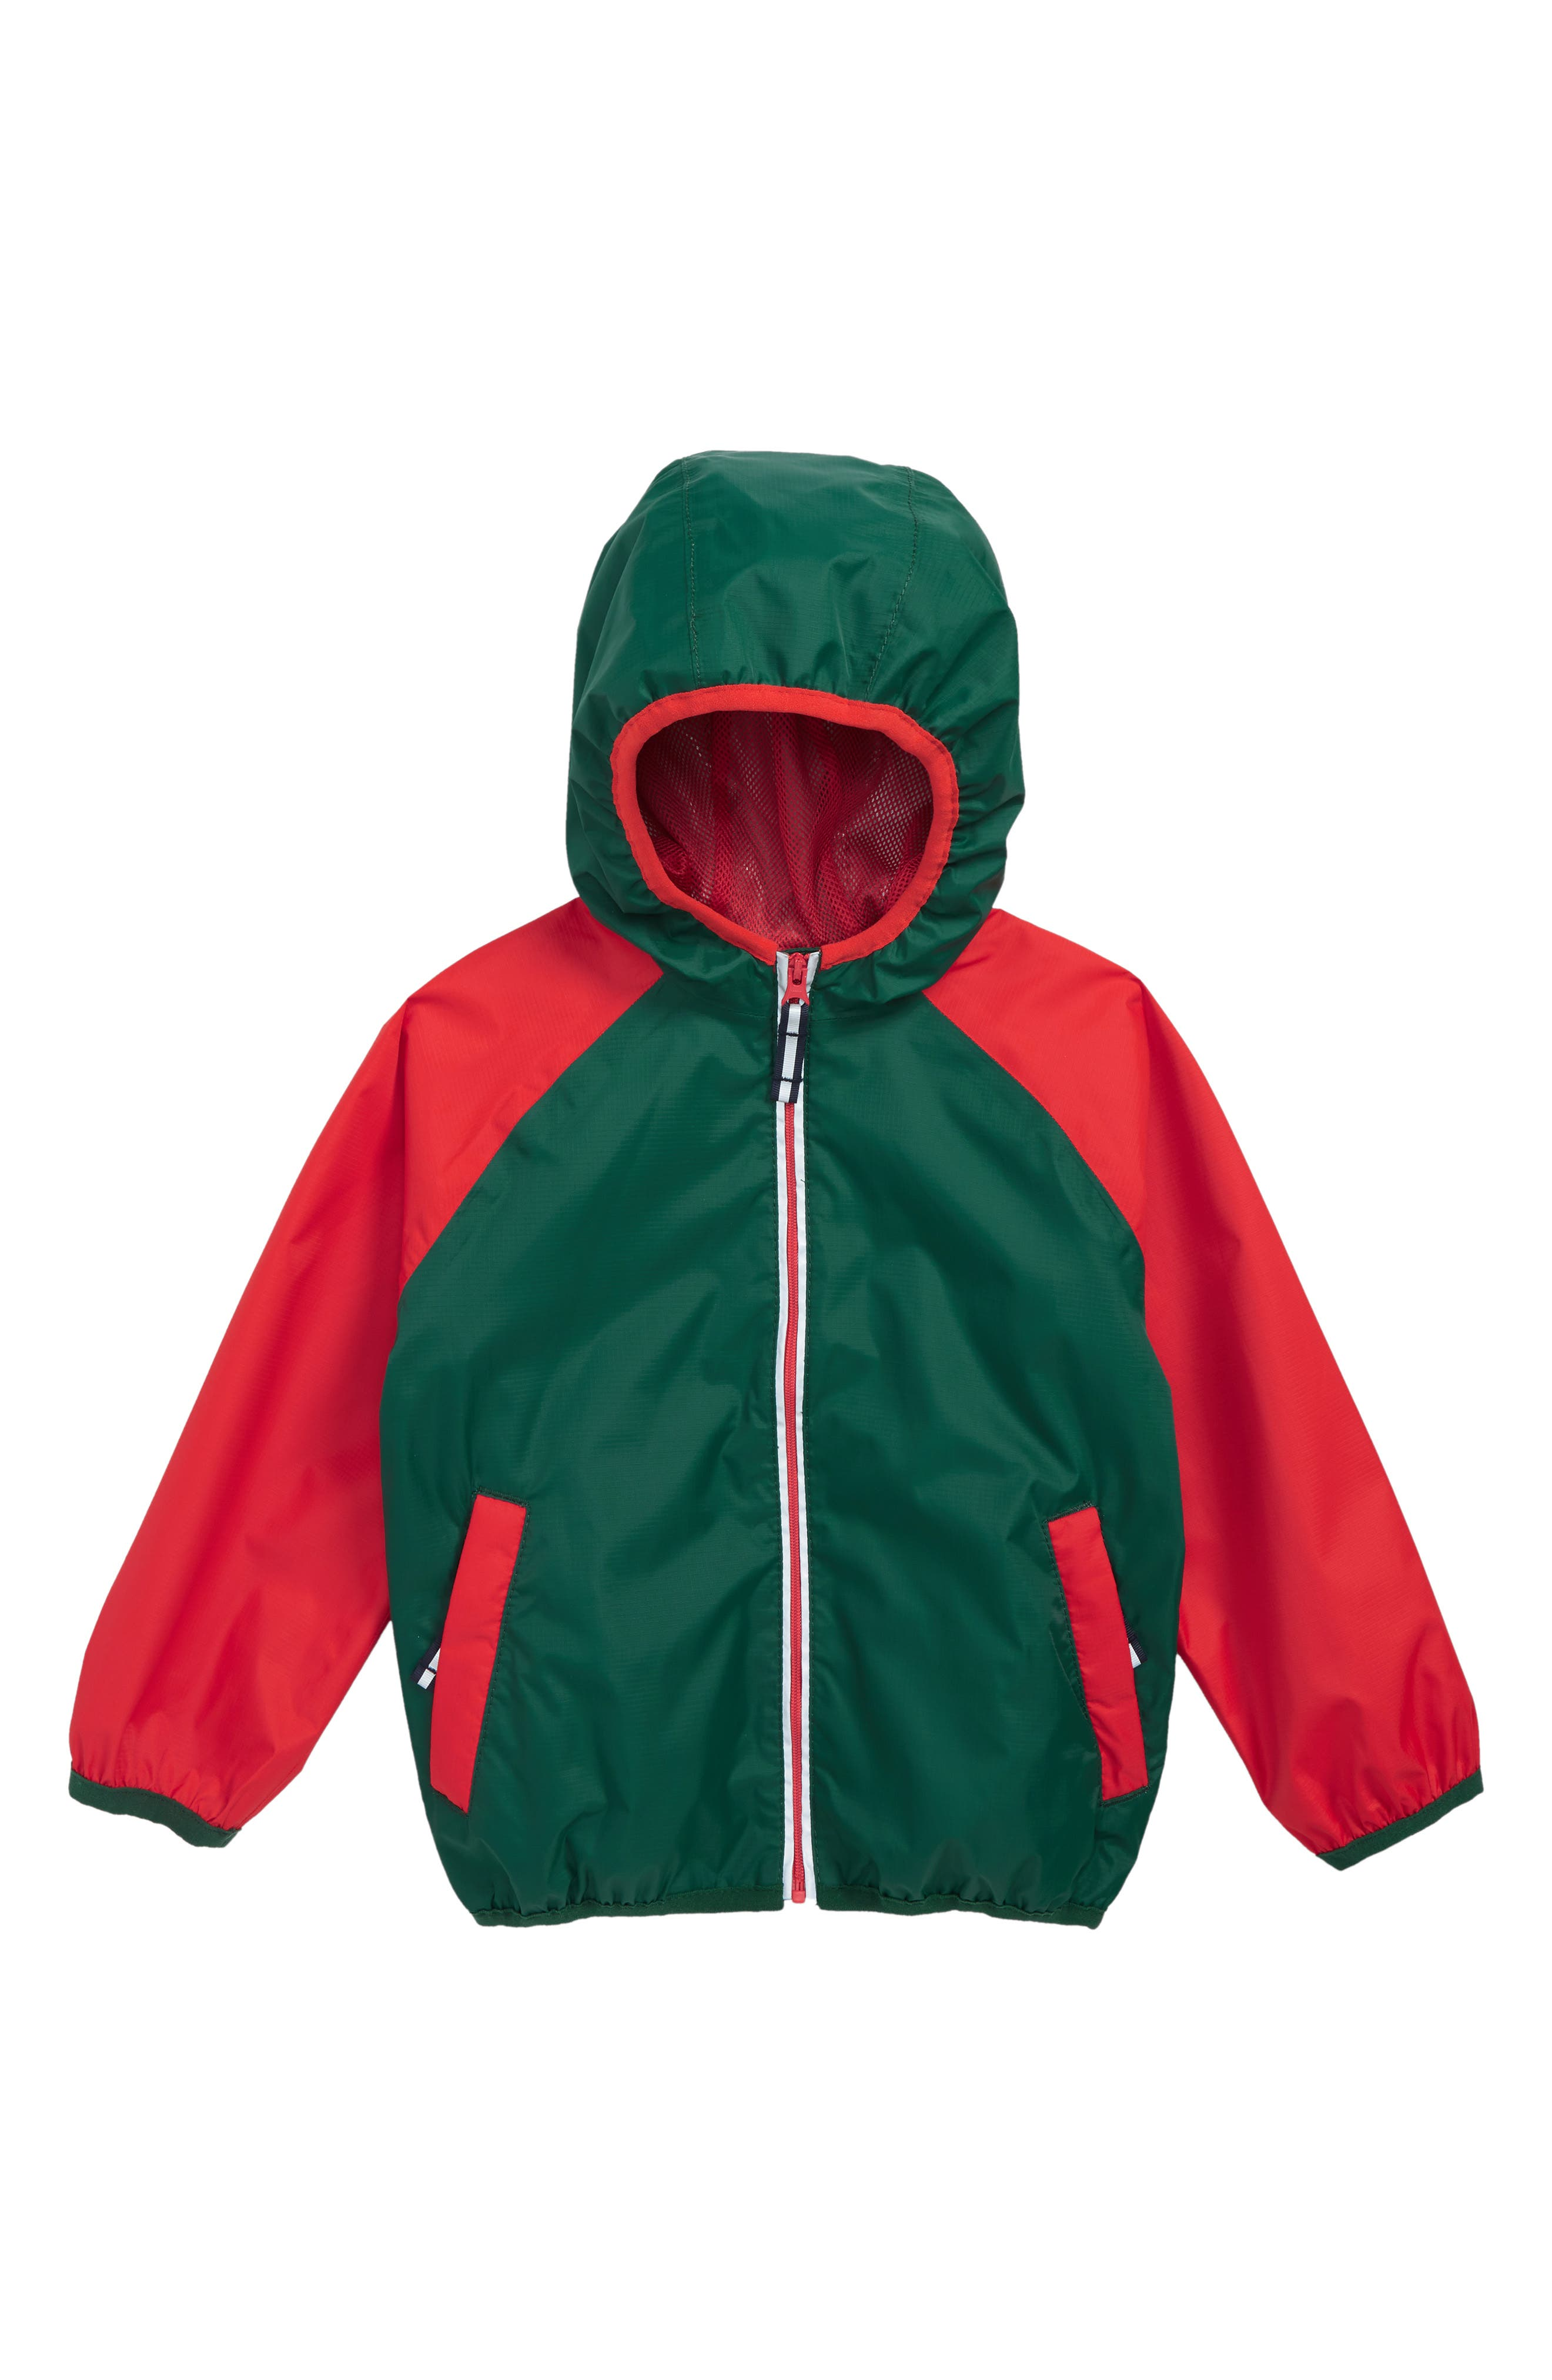 Packaway Rain Jacket,                             Main thumbnail 1, color,                             SCOTTS PINE GREEN/ SALSA RED